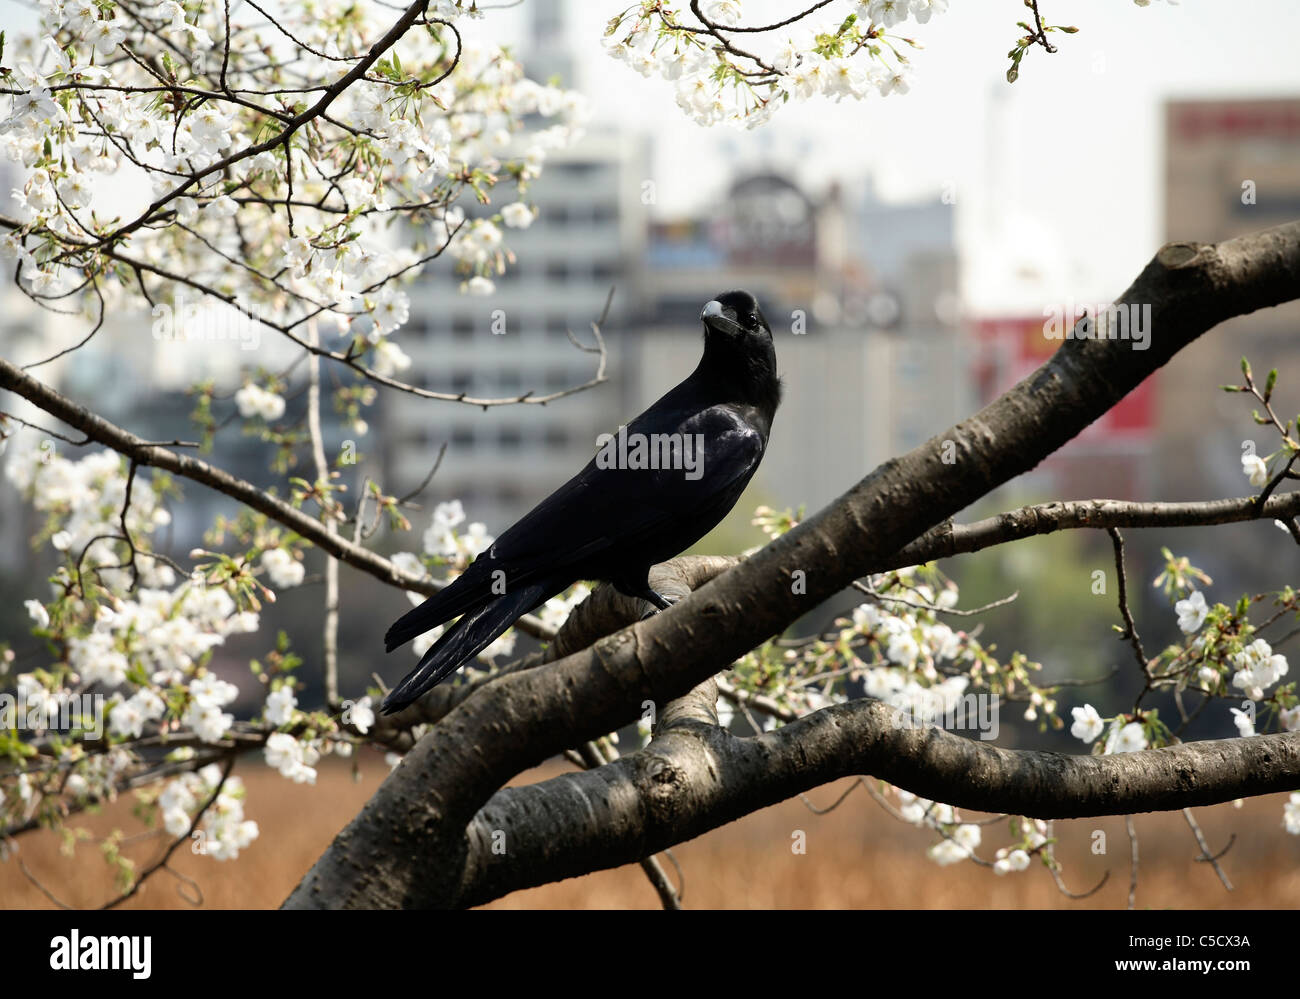 Side view of a black raven on a flowering tree against blurred background - Stock Image